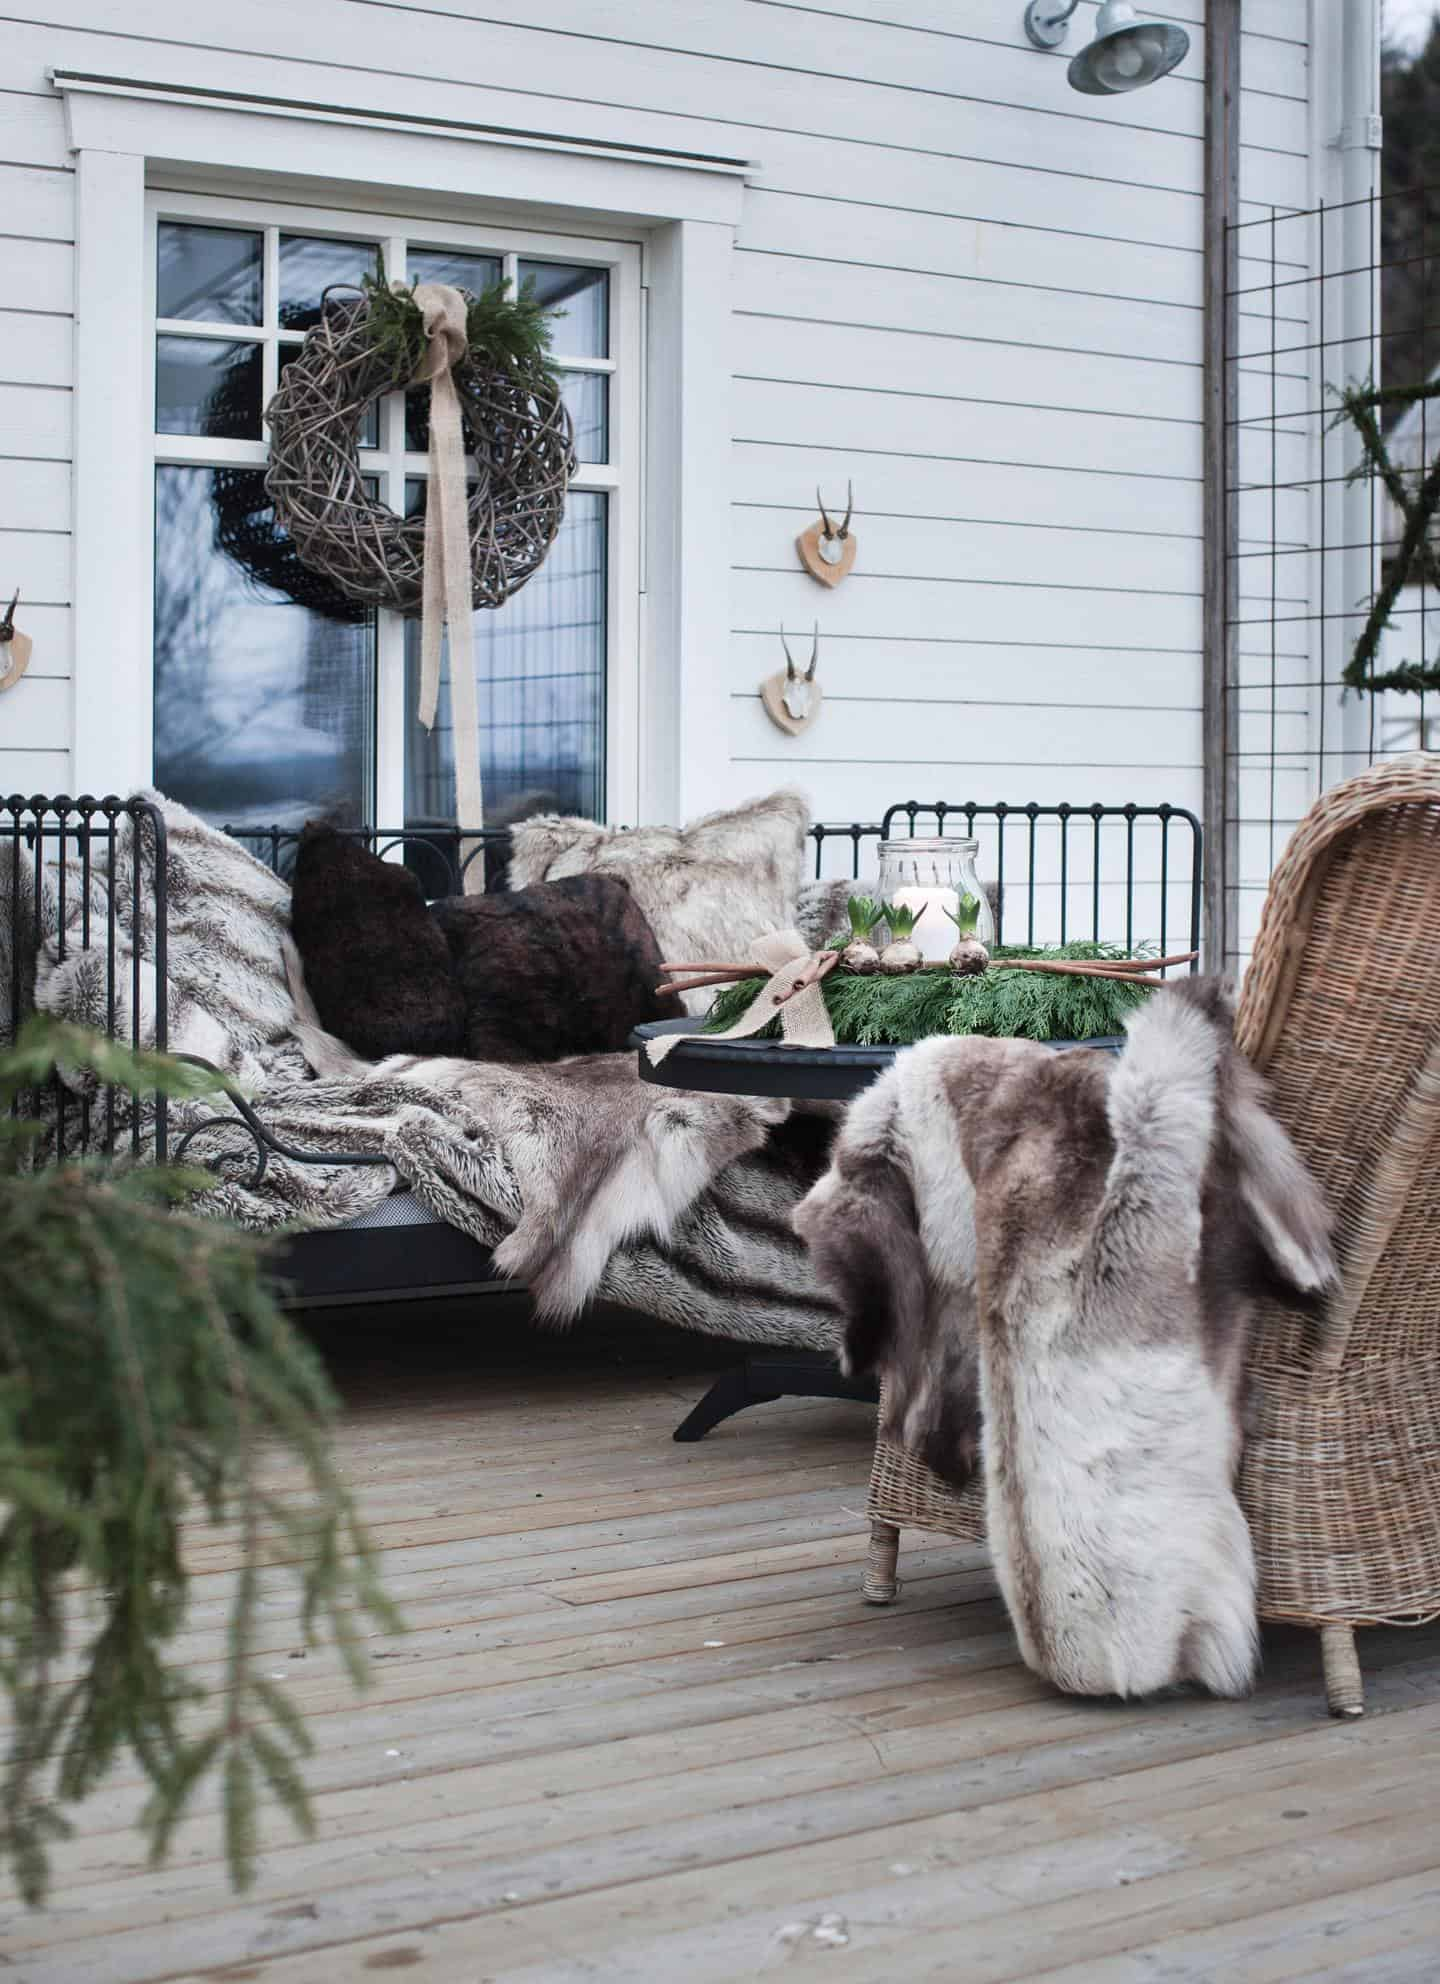 Outdoor winter party ideas: Fur pillow covers for outdoor furniture decor